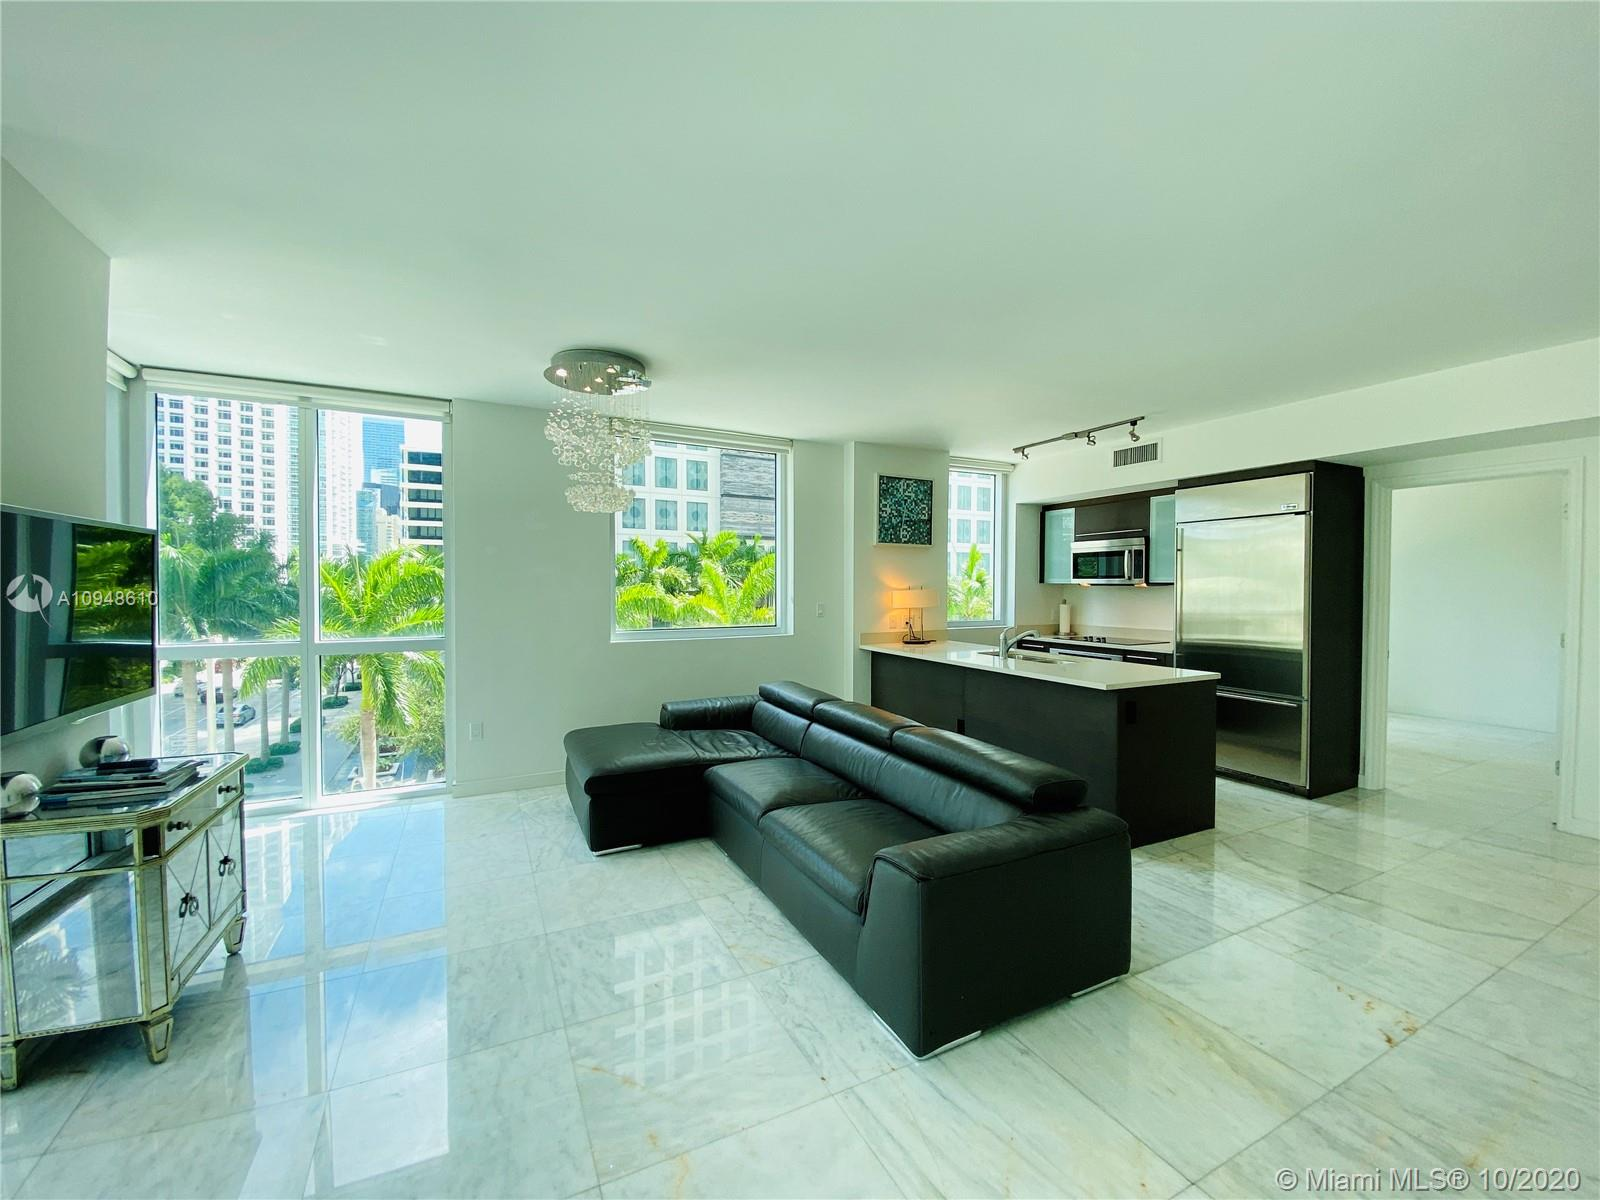 2BR/2BA SPACIOUS CORNER UNIT IN THE HEART OF BRICKELL AVE. EUROPEAN OPEN STYLE KITCHEN, TOP OF THE LINE APPLIANCES. OPEN & SPACIOUS FLOORPLAN, MARBLE FLOORS THROUGHOUT. PARKING ON SAME FLOOR. ENJOY THE UNIQUE AMENITIES: 3 SPECTACULAR POOLS, AND A 42nd FLOOR WITH PANORAMIC VIEW POOL. STATE OF THE ART FITNESS CENTER, WINE CELLAR ROOM, SPORT BAR ROOM, UNIQUE THEATER, WALKING DISTANCE OF MARY BRICKELL VILLAGE AND AL THE FINANCIAL DISTRICT & RESTAURANTS. BASIC CABLE & INTERNET INCLUDED. PLEASE NOTE PRICE IS FIRM FIRM!